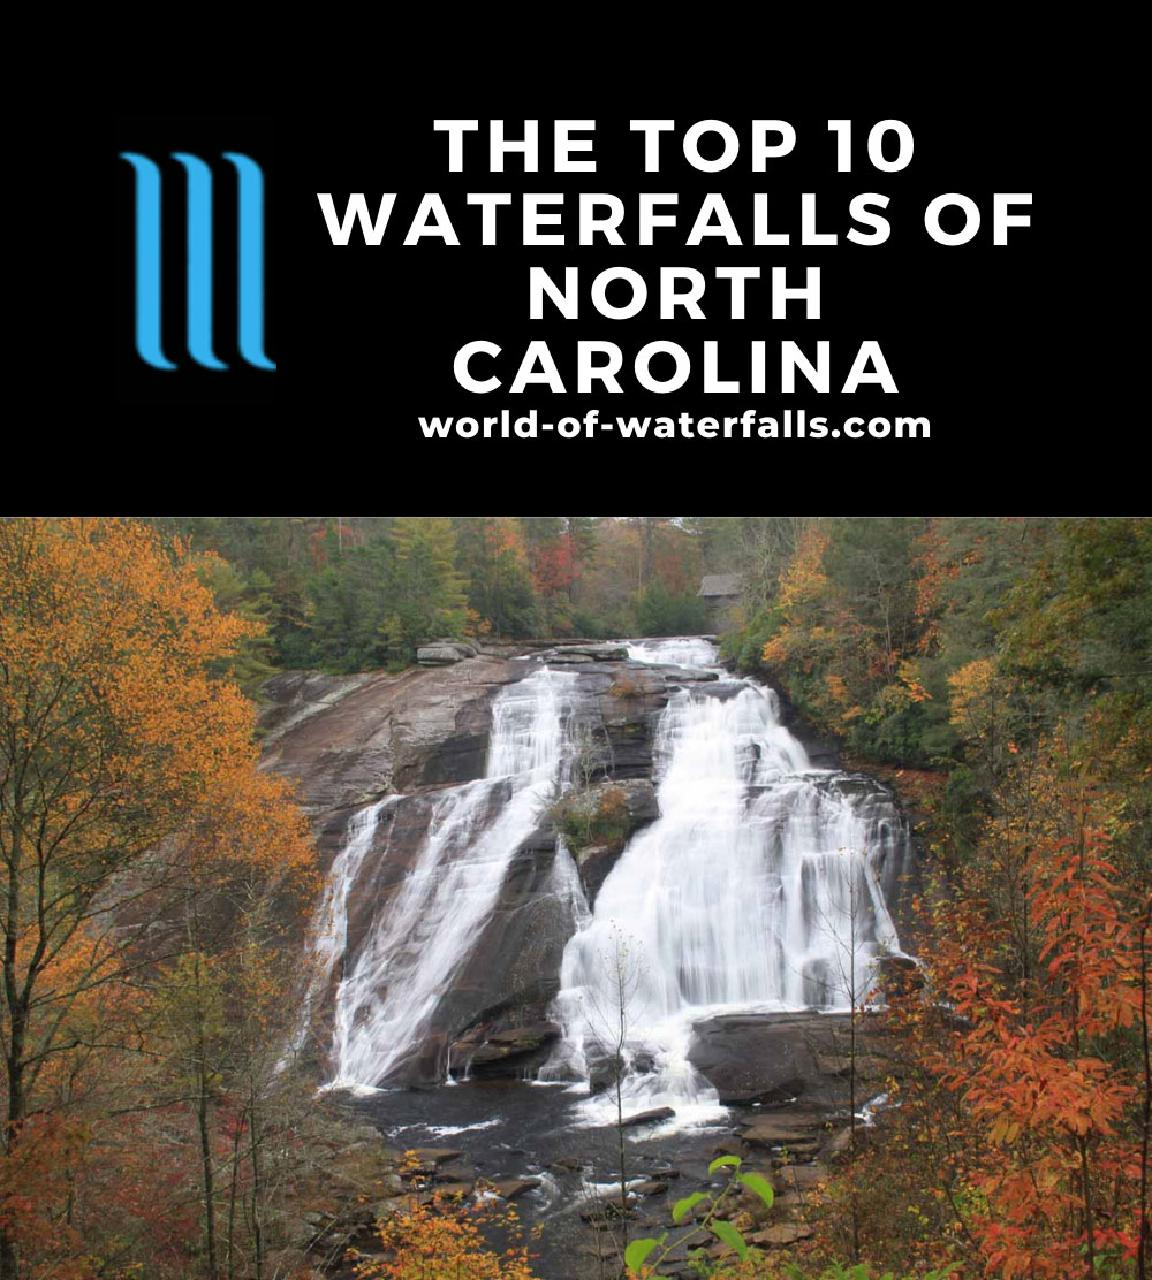 The Top 10 Waterfalls of North Carolina